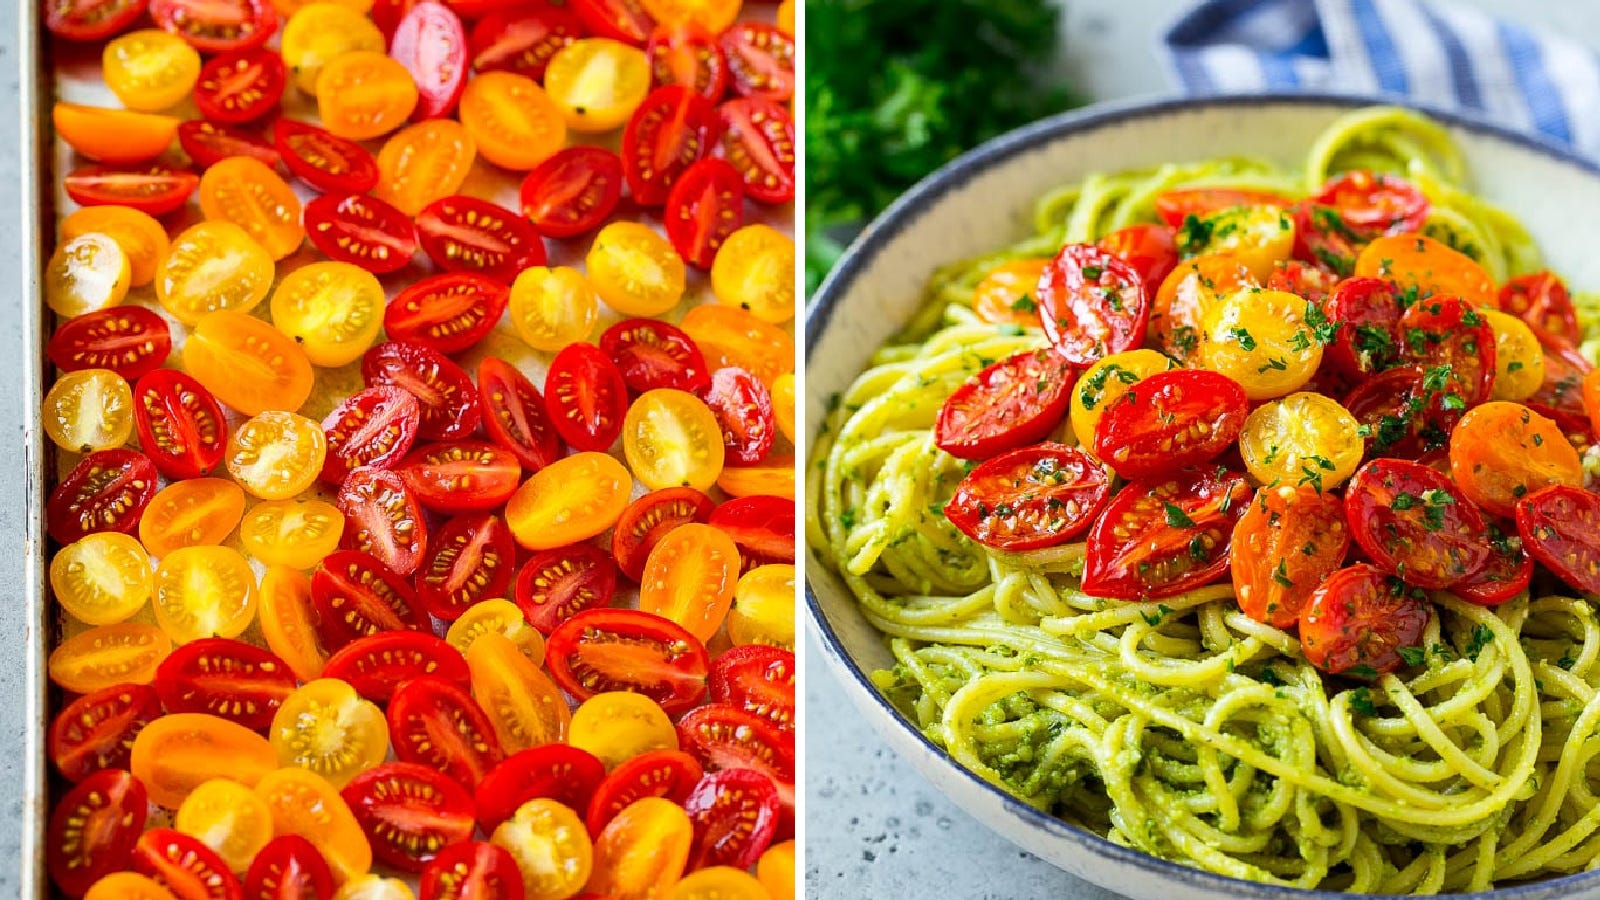 Two images: the left image is of cherry tomatoes, scattered over a large sheet pan before roasting, and the right image is of pesto spaghetti toped with roasted cherry tomatoes.